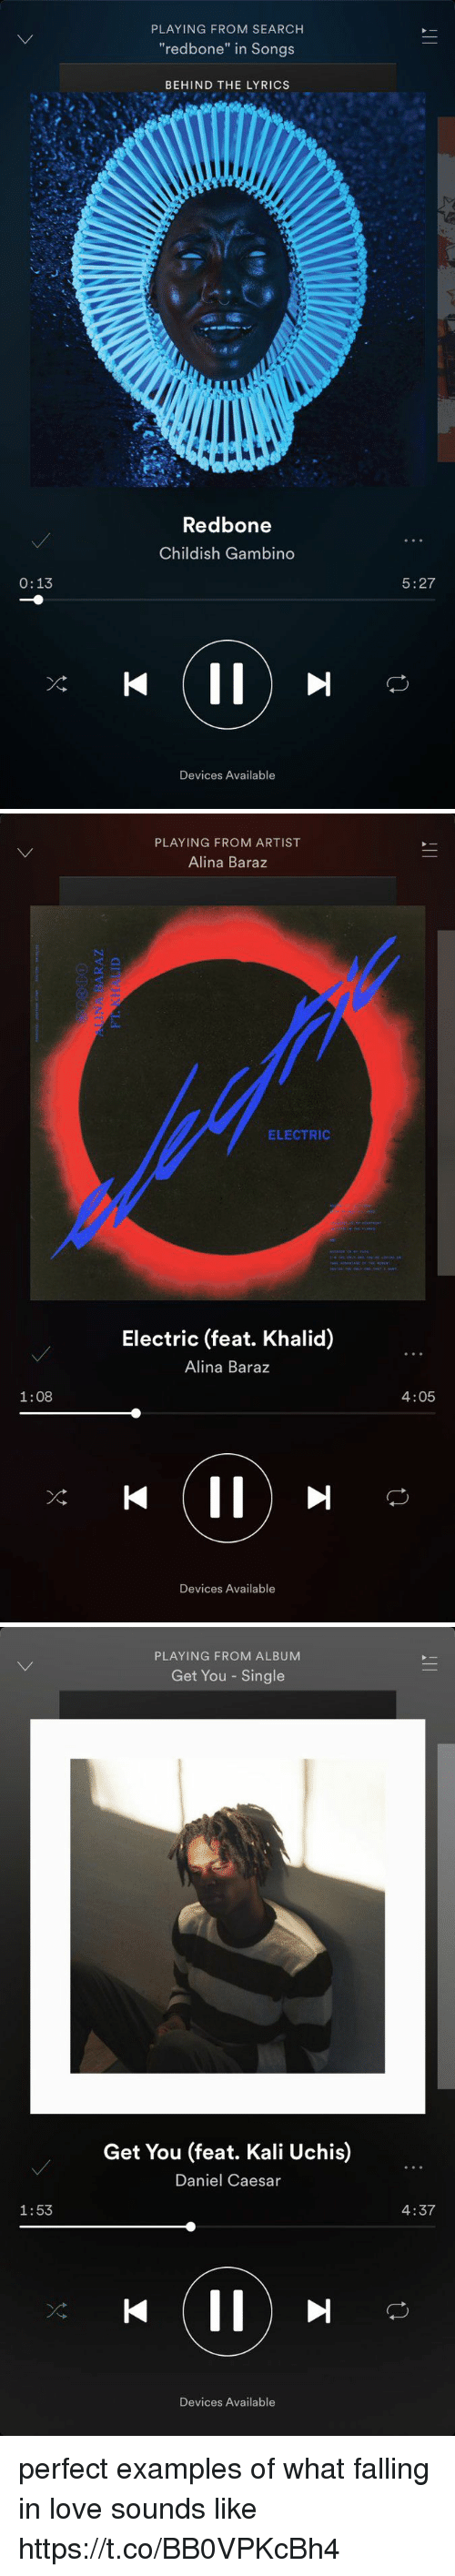 "Childish Gambino, Funny, and Love: 0:13  PLAYING FROM SEARCH  ""redbone"" in Songs  BEHIND THE LYRICS  Redbone  Childish Gambino  Devices Available  5:27   1:08  PLAYING FROM ARTIST  Alina Baraz  ELECTRIC  Electric (feat. Khalid)  Alina Baraz  Devices Available  4:05   1:53  PLAYING FROM ALBUM  Get You Single  Get You (feat. Kali Uchis)  Daniel Caesar  Devices Available  4:37 perfect examples of what falling in love sounds like https://t.co/BB0VPKcBh4"